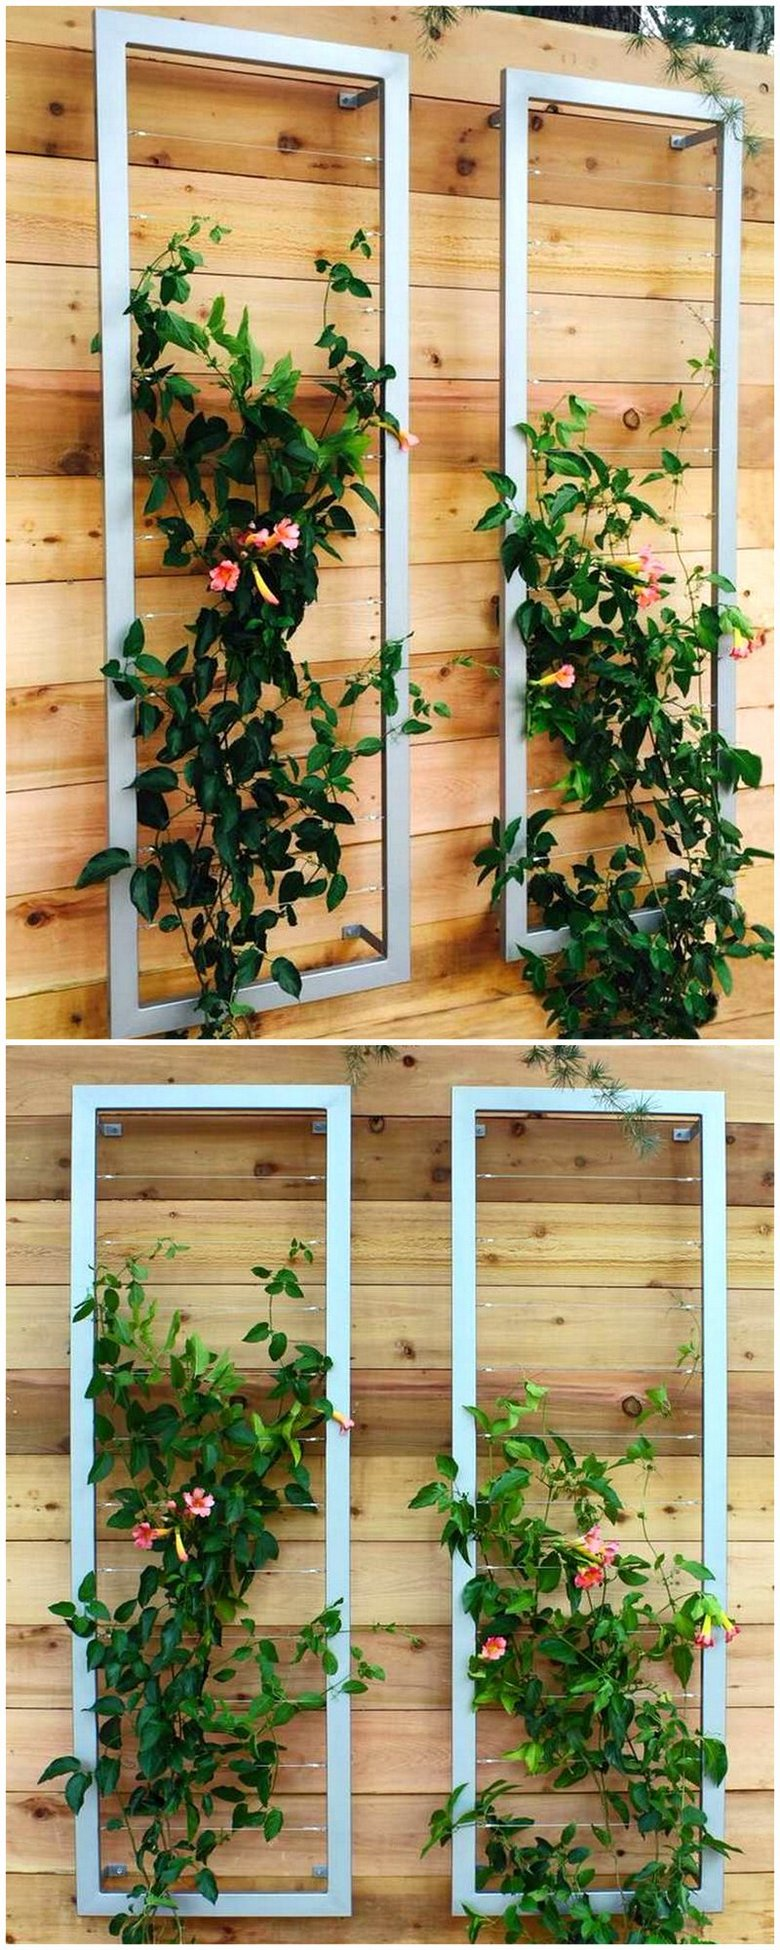 Trellis Design Ideas 1